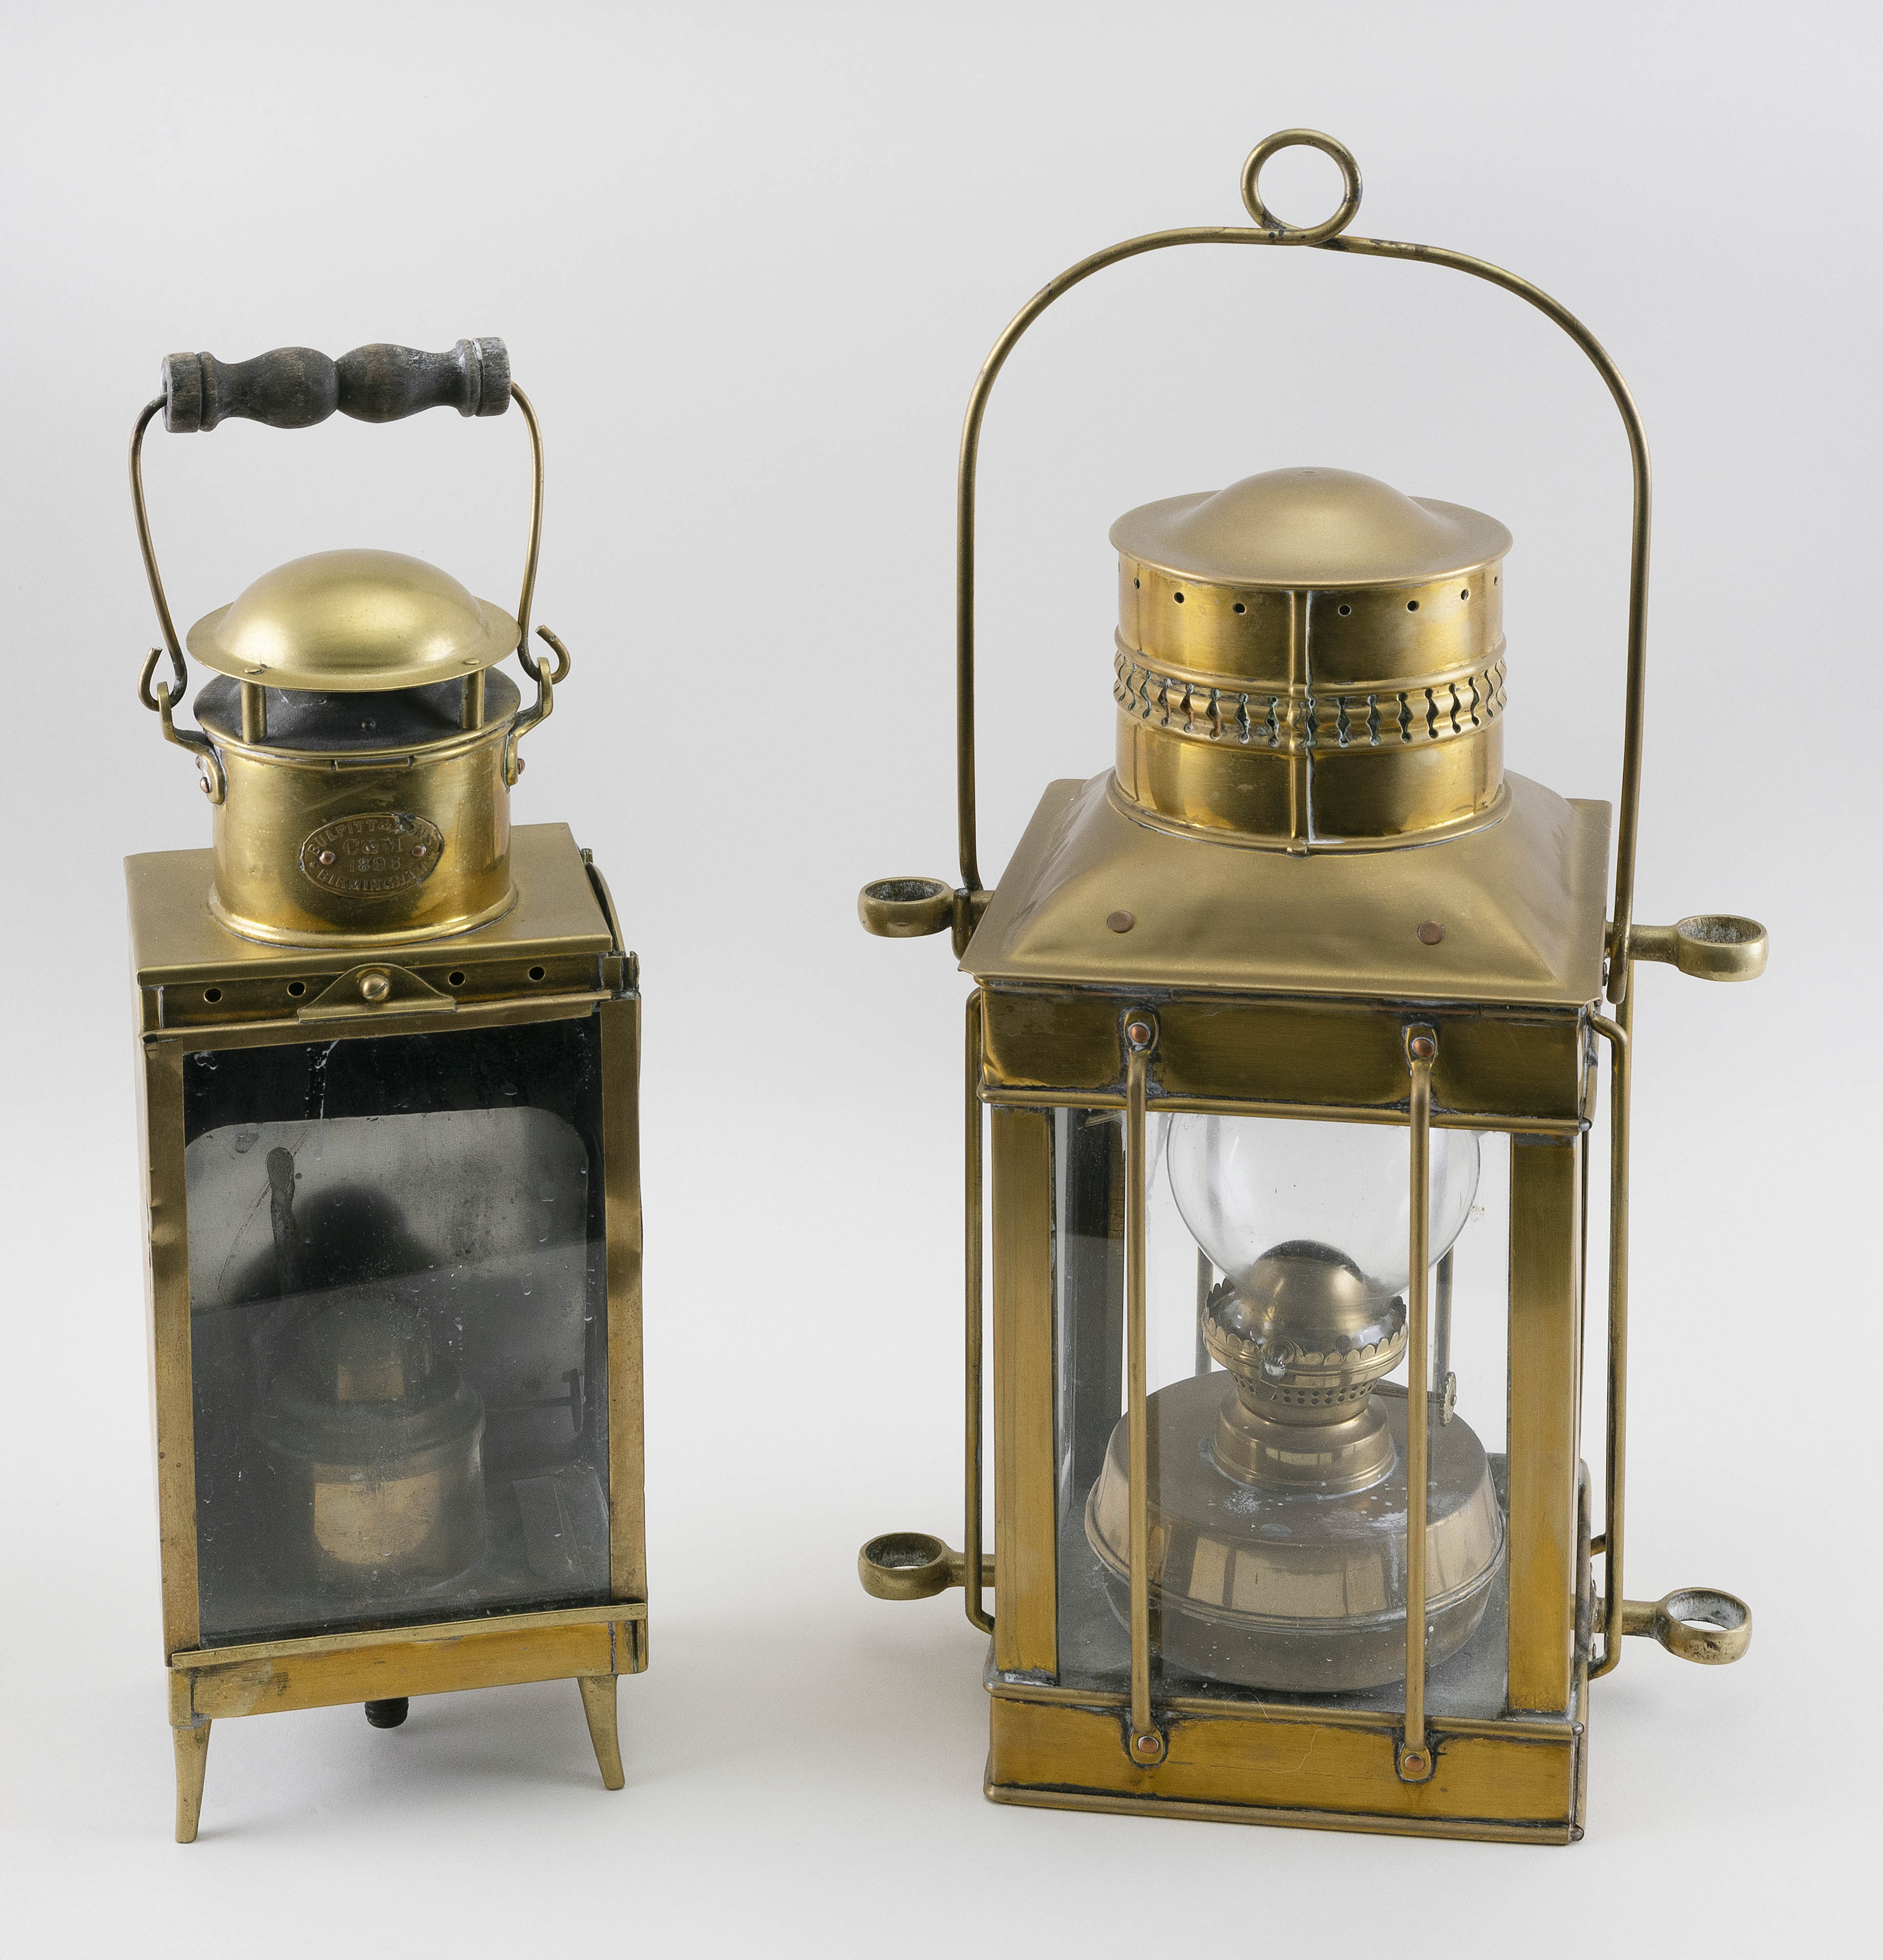 TWO BRASS SHIP'S LANTERNS Late 19th Century Heights exclusive of handles 14.5